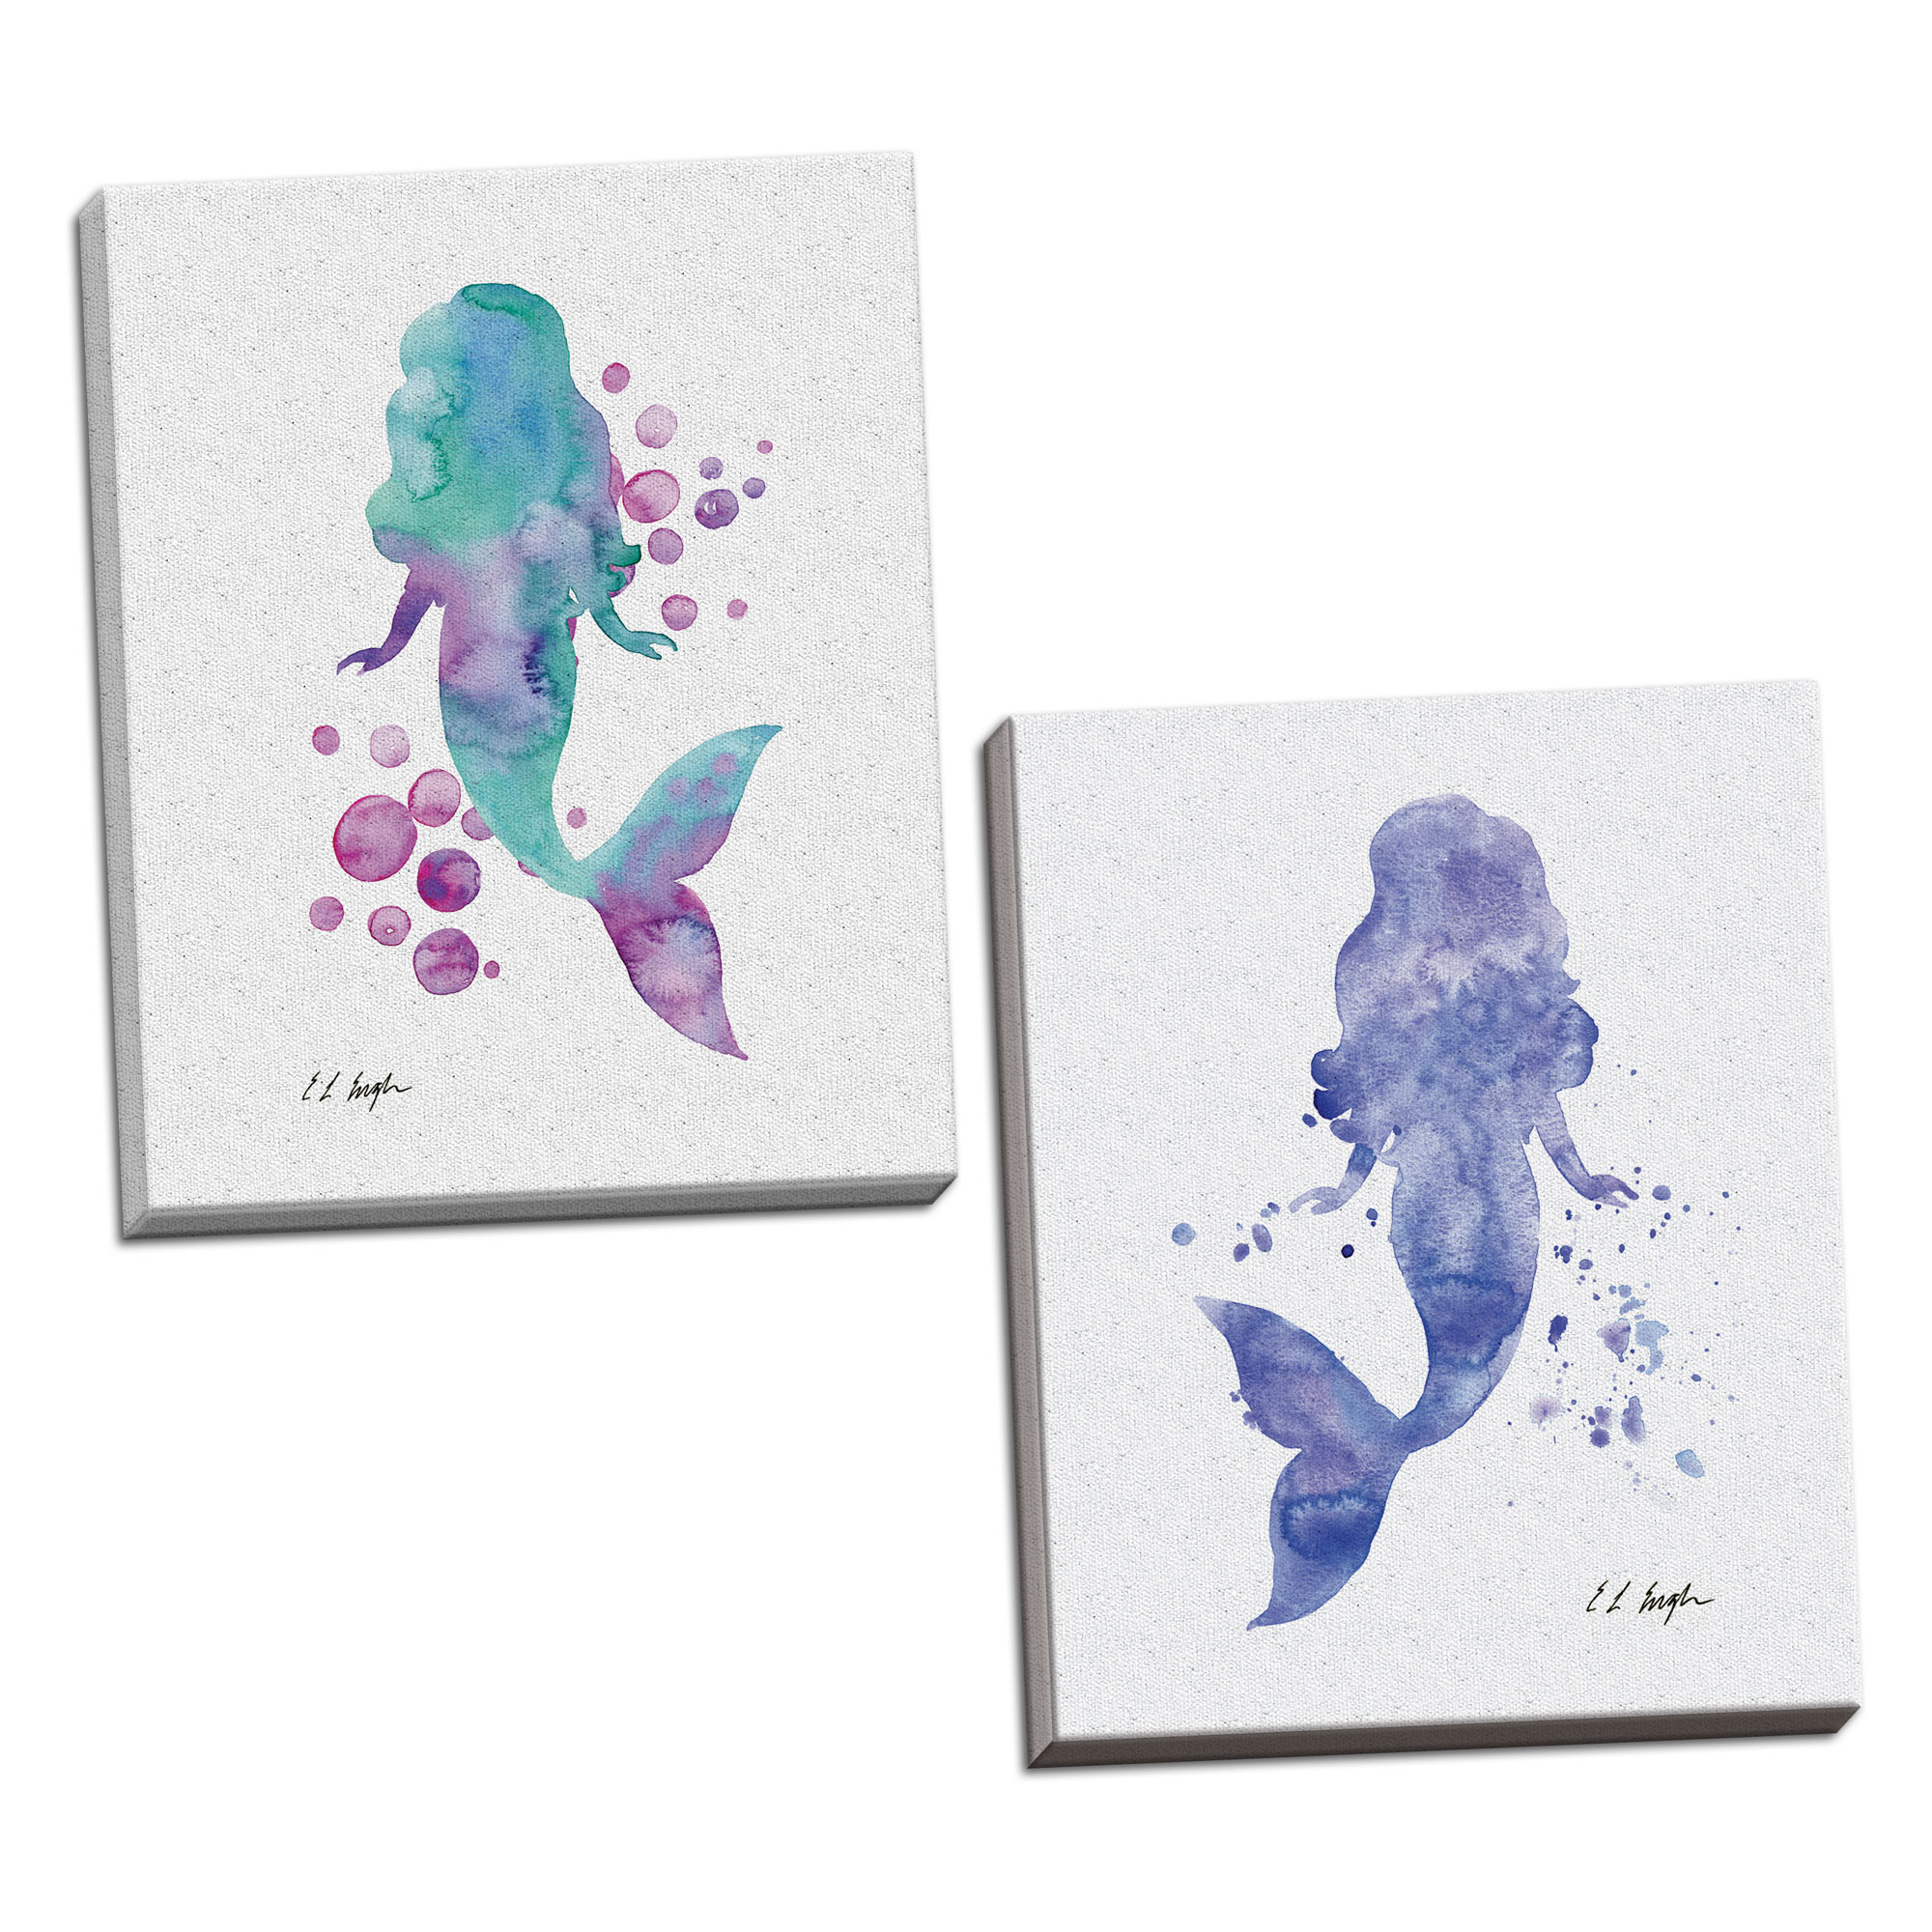 Gango Home Decor Vertical Purple Mermaid, & Blue and Purple Mermaid Bubbles by Elise Engh (Ready to Hang); Two 16x20in Hand-Stretched Canvases